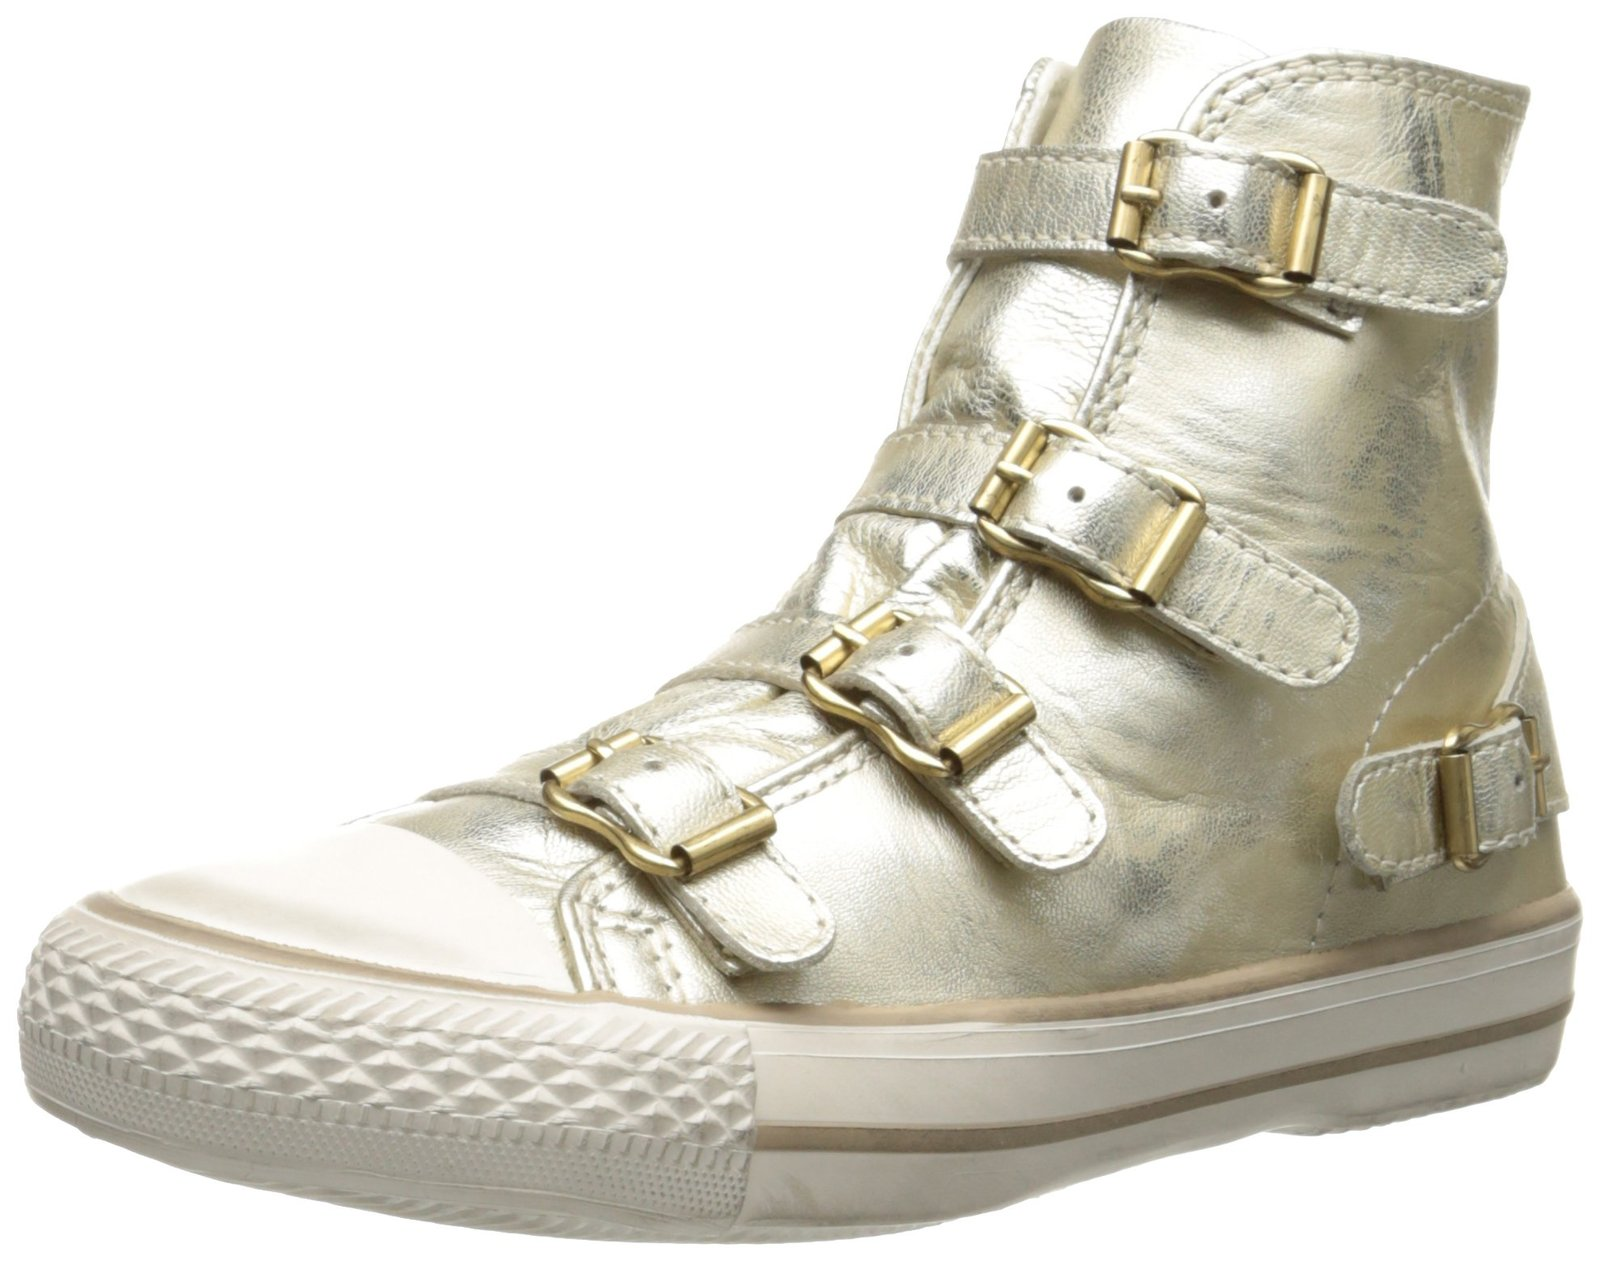 Ash Women's Virgin Fashion Sneaker, Gold, 35 EU/5 M US